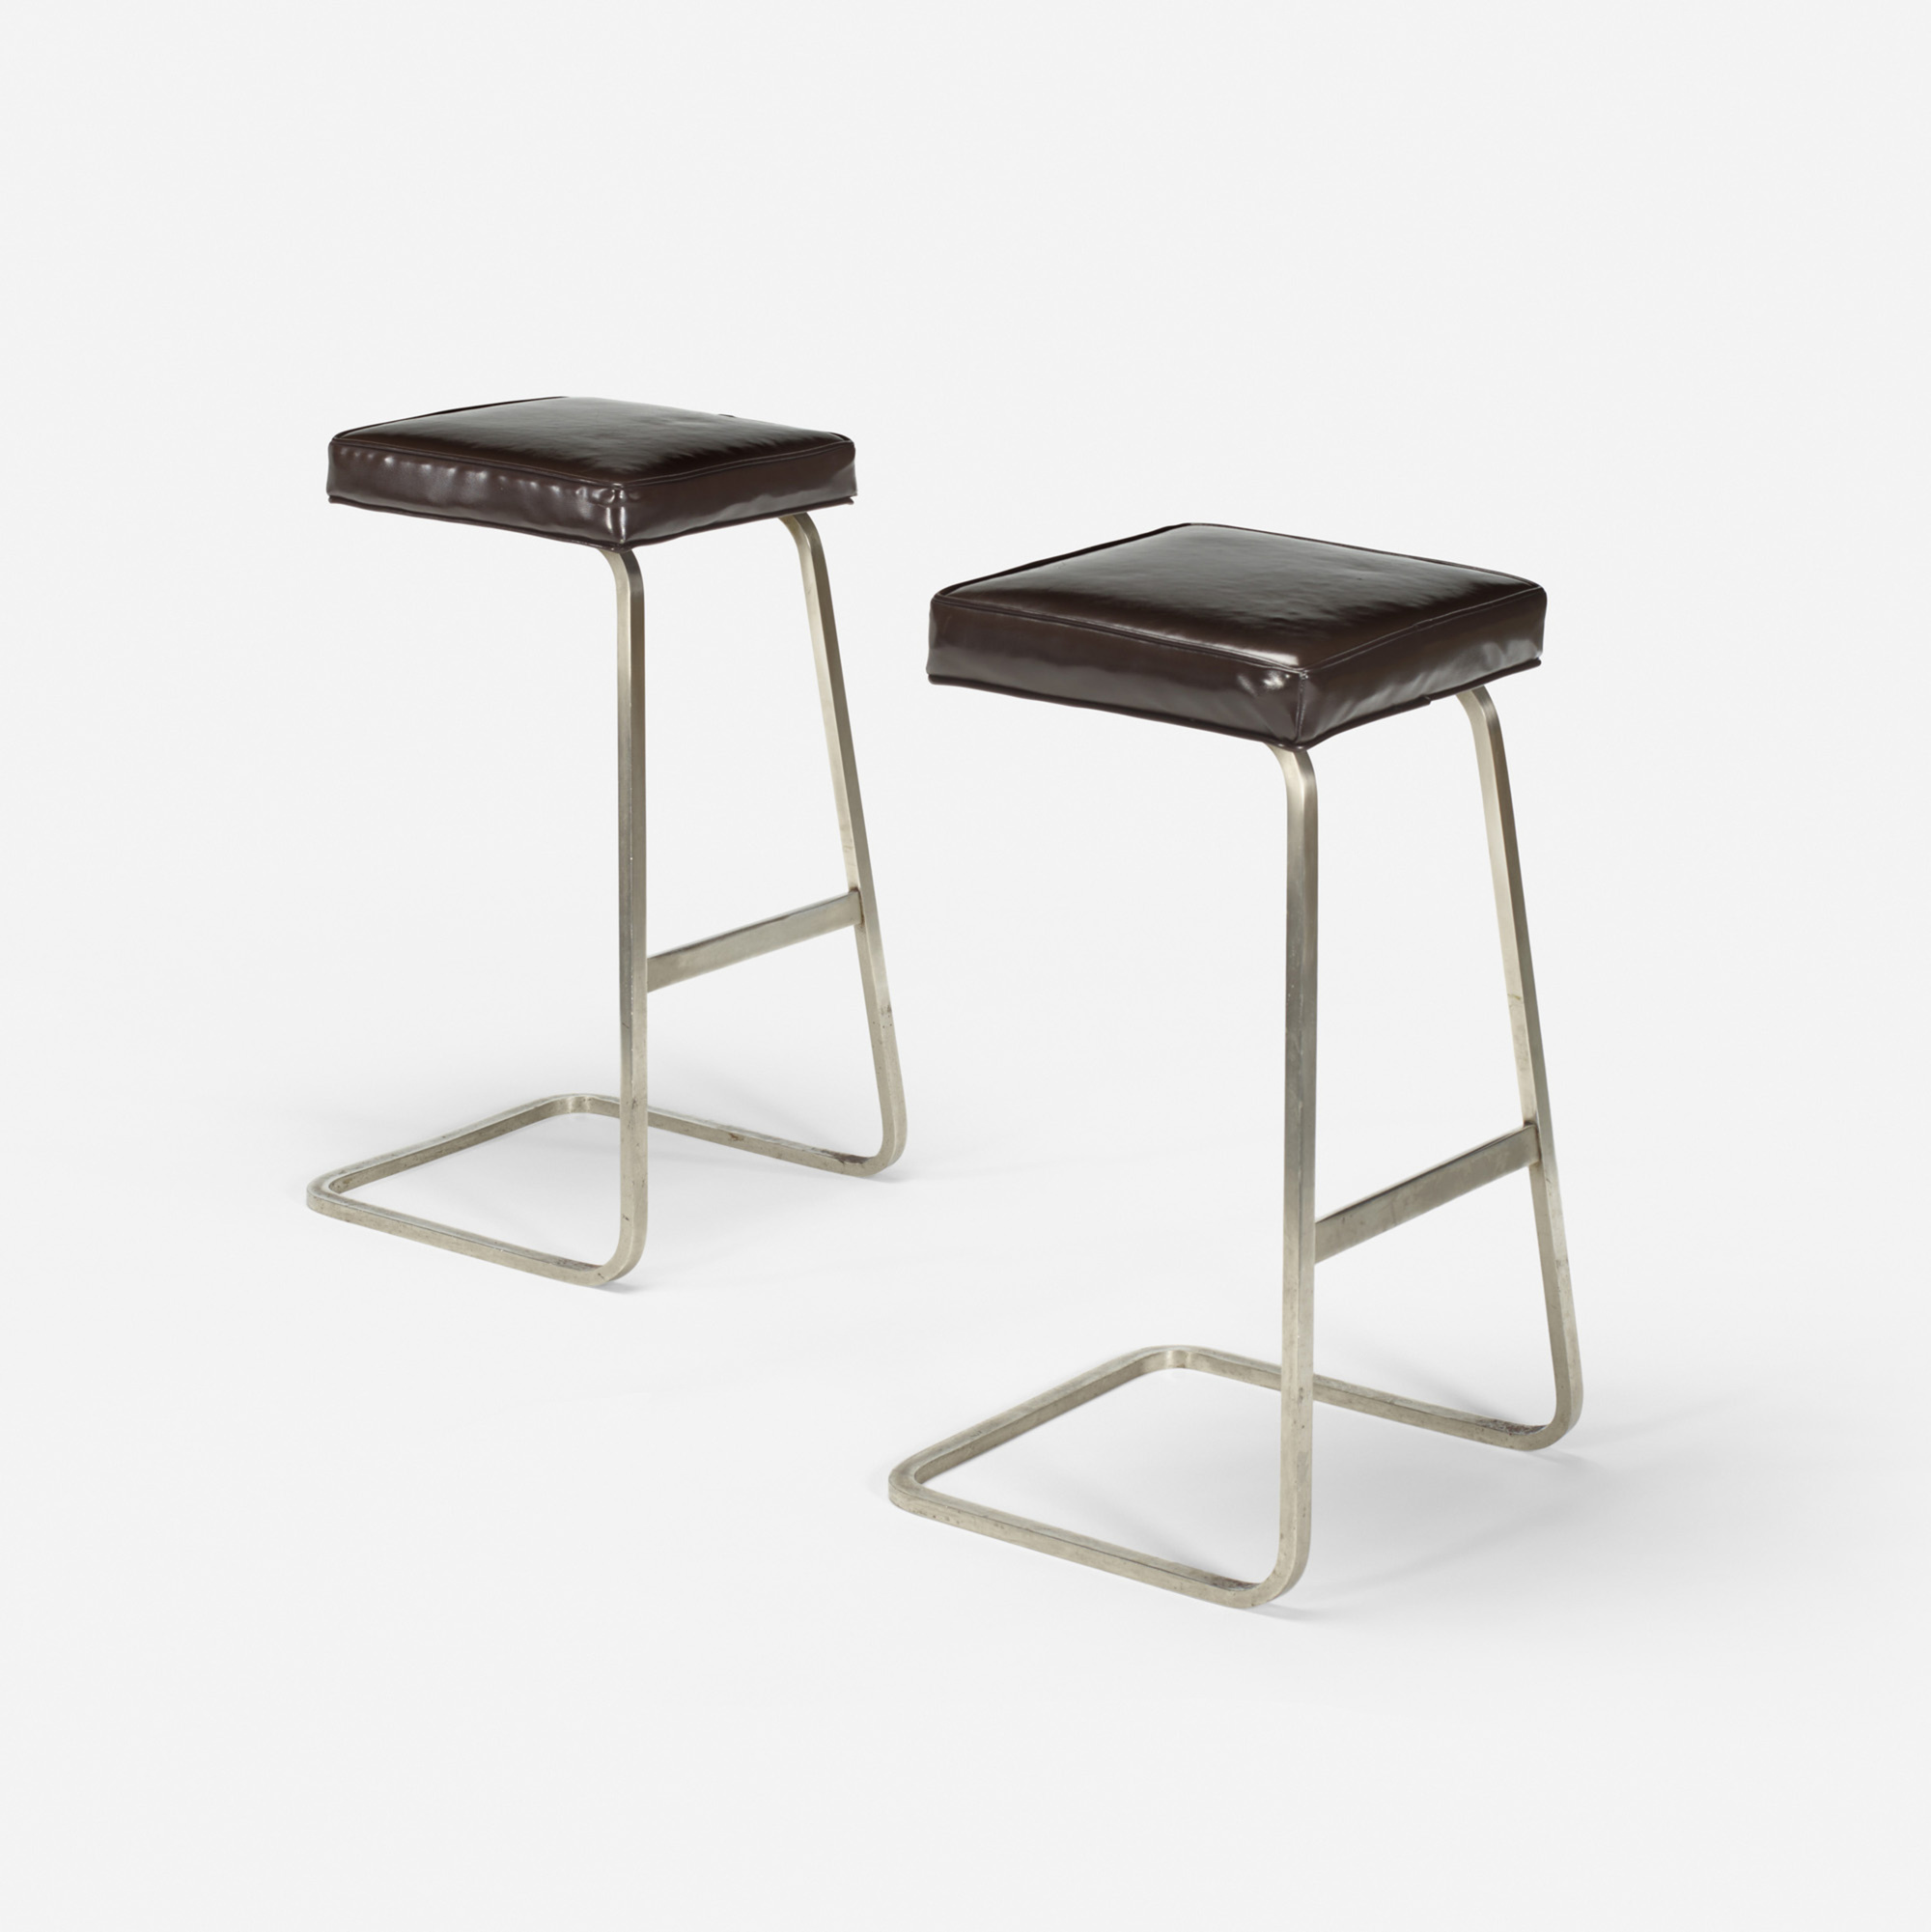 121: Ludwig Mies van der Rohe with Philip Johnson / Four Seasons bar stools from the Grill Room, pair (1 of 1)